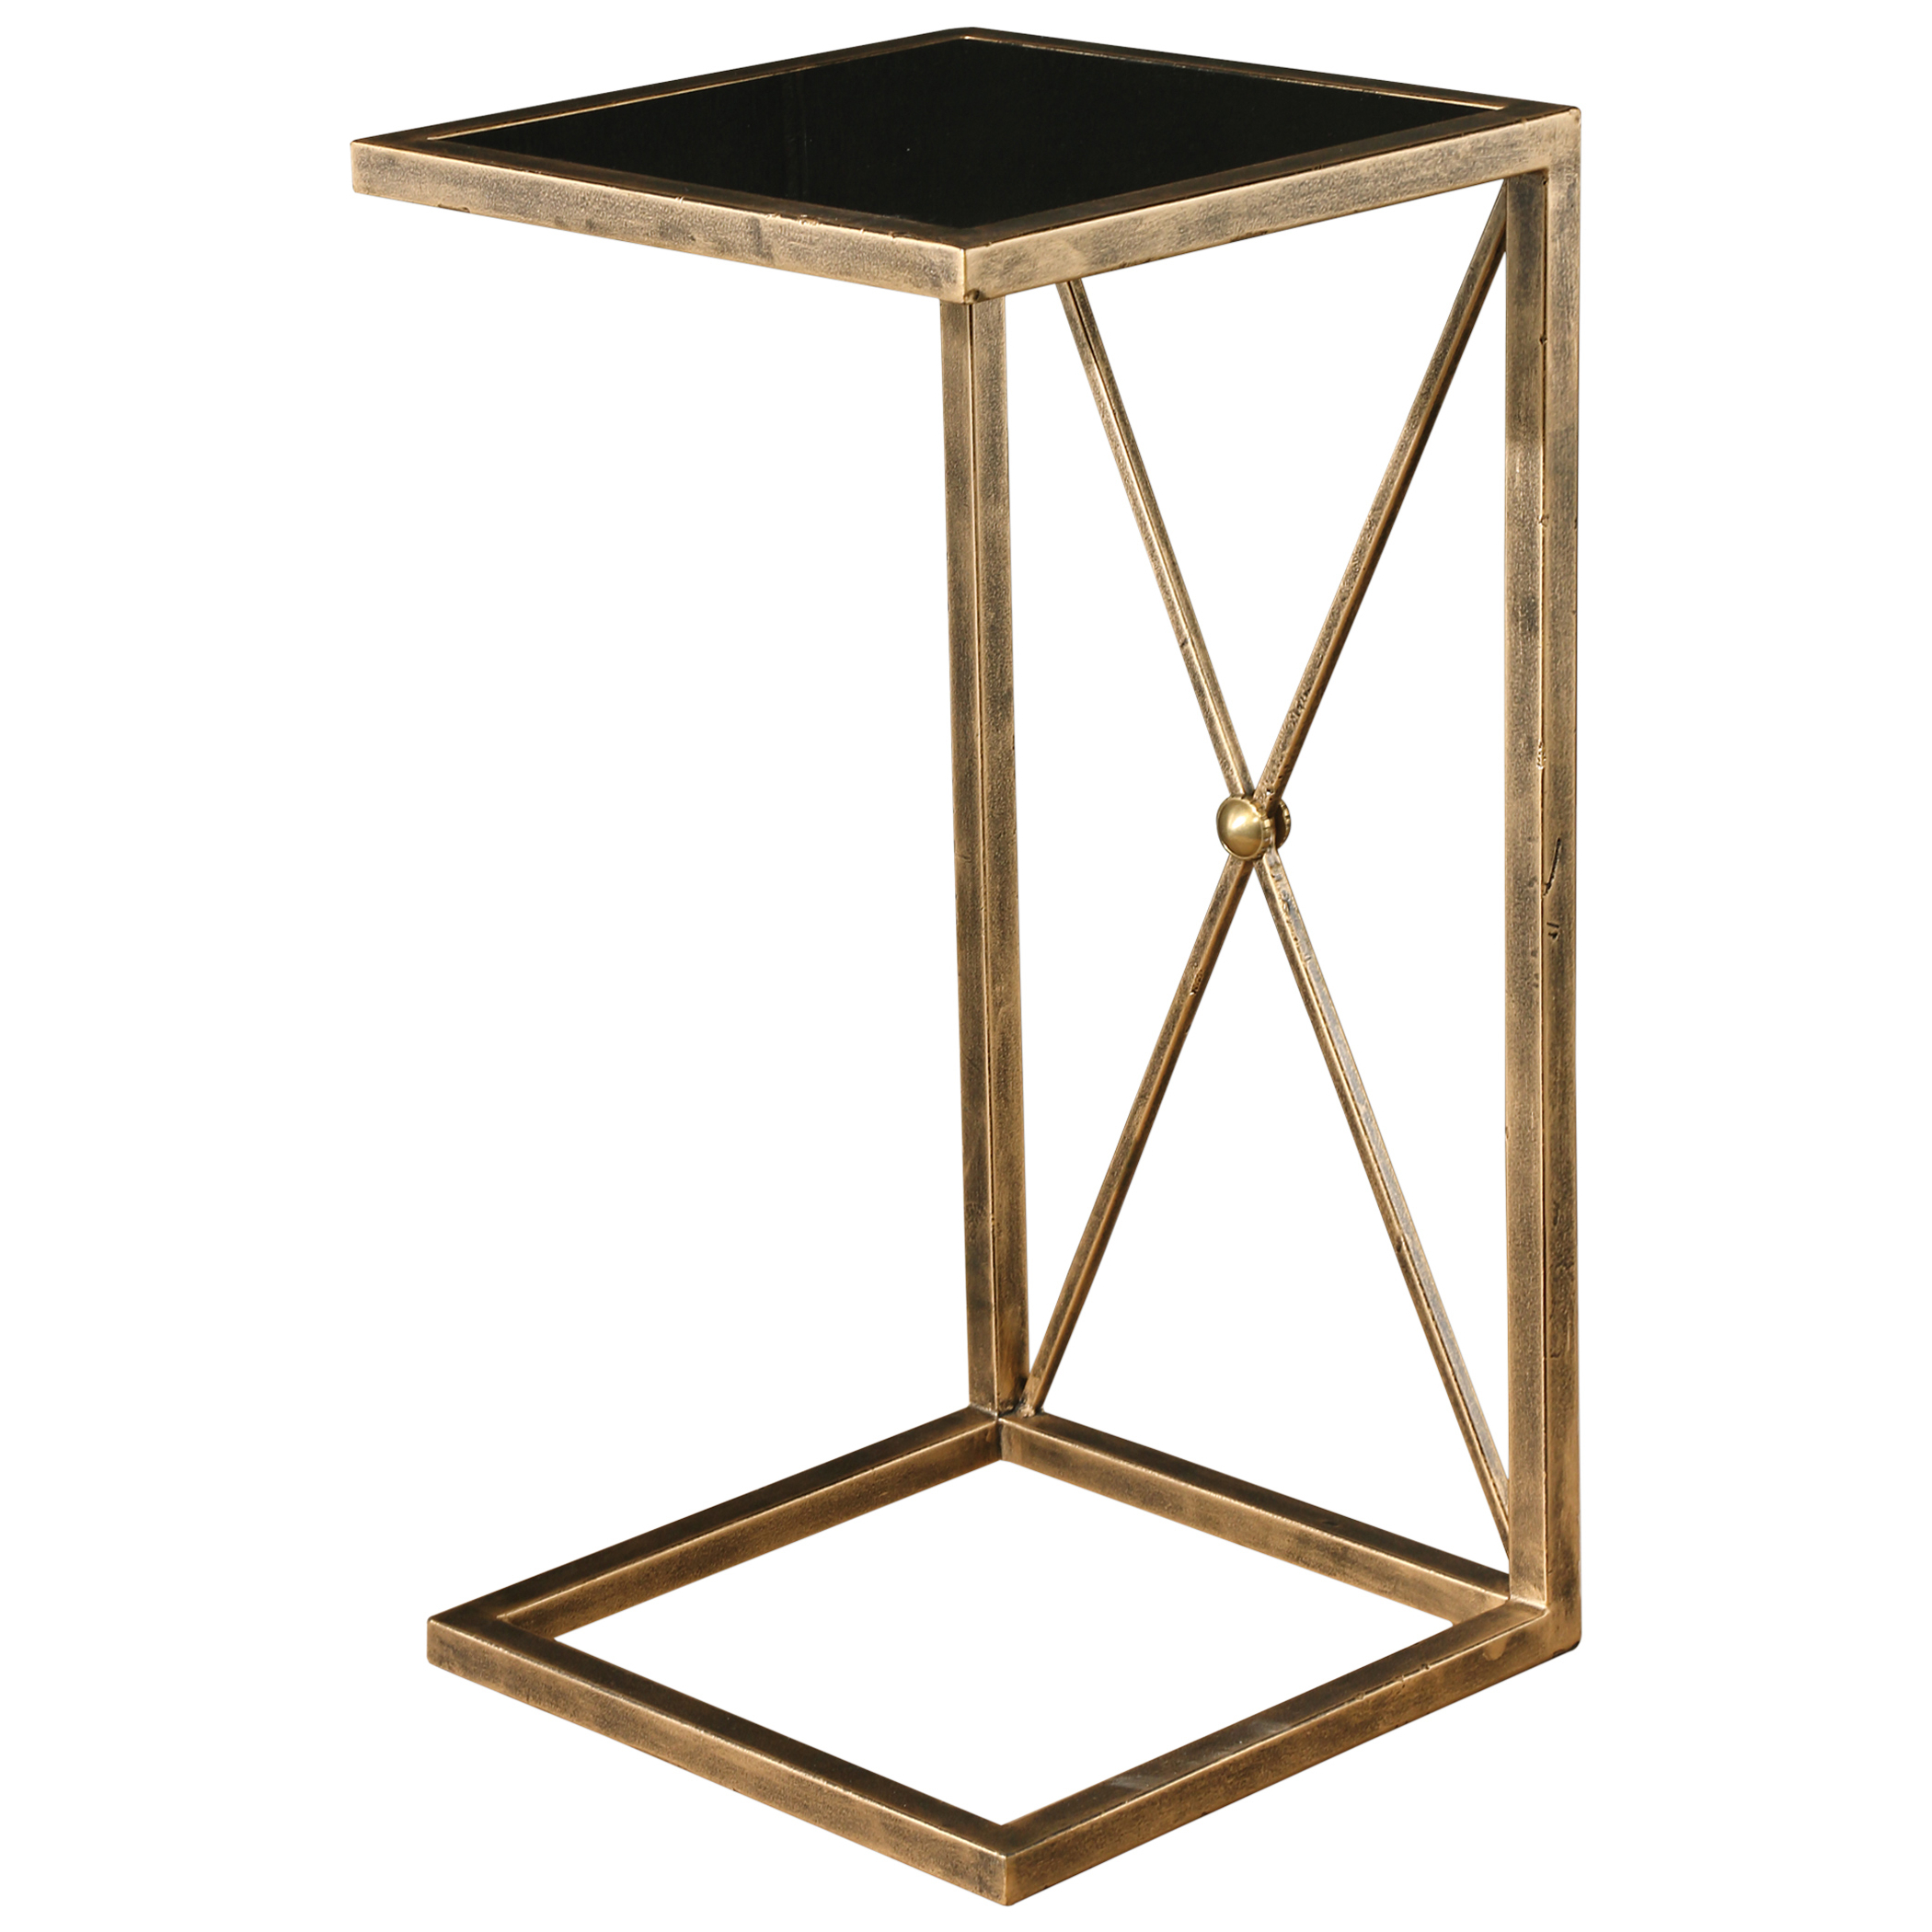 Fresh Cut Side Tables For Well Known Designer Side & End Tables – Eclectic Side & End Tables (View 16 of 20)